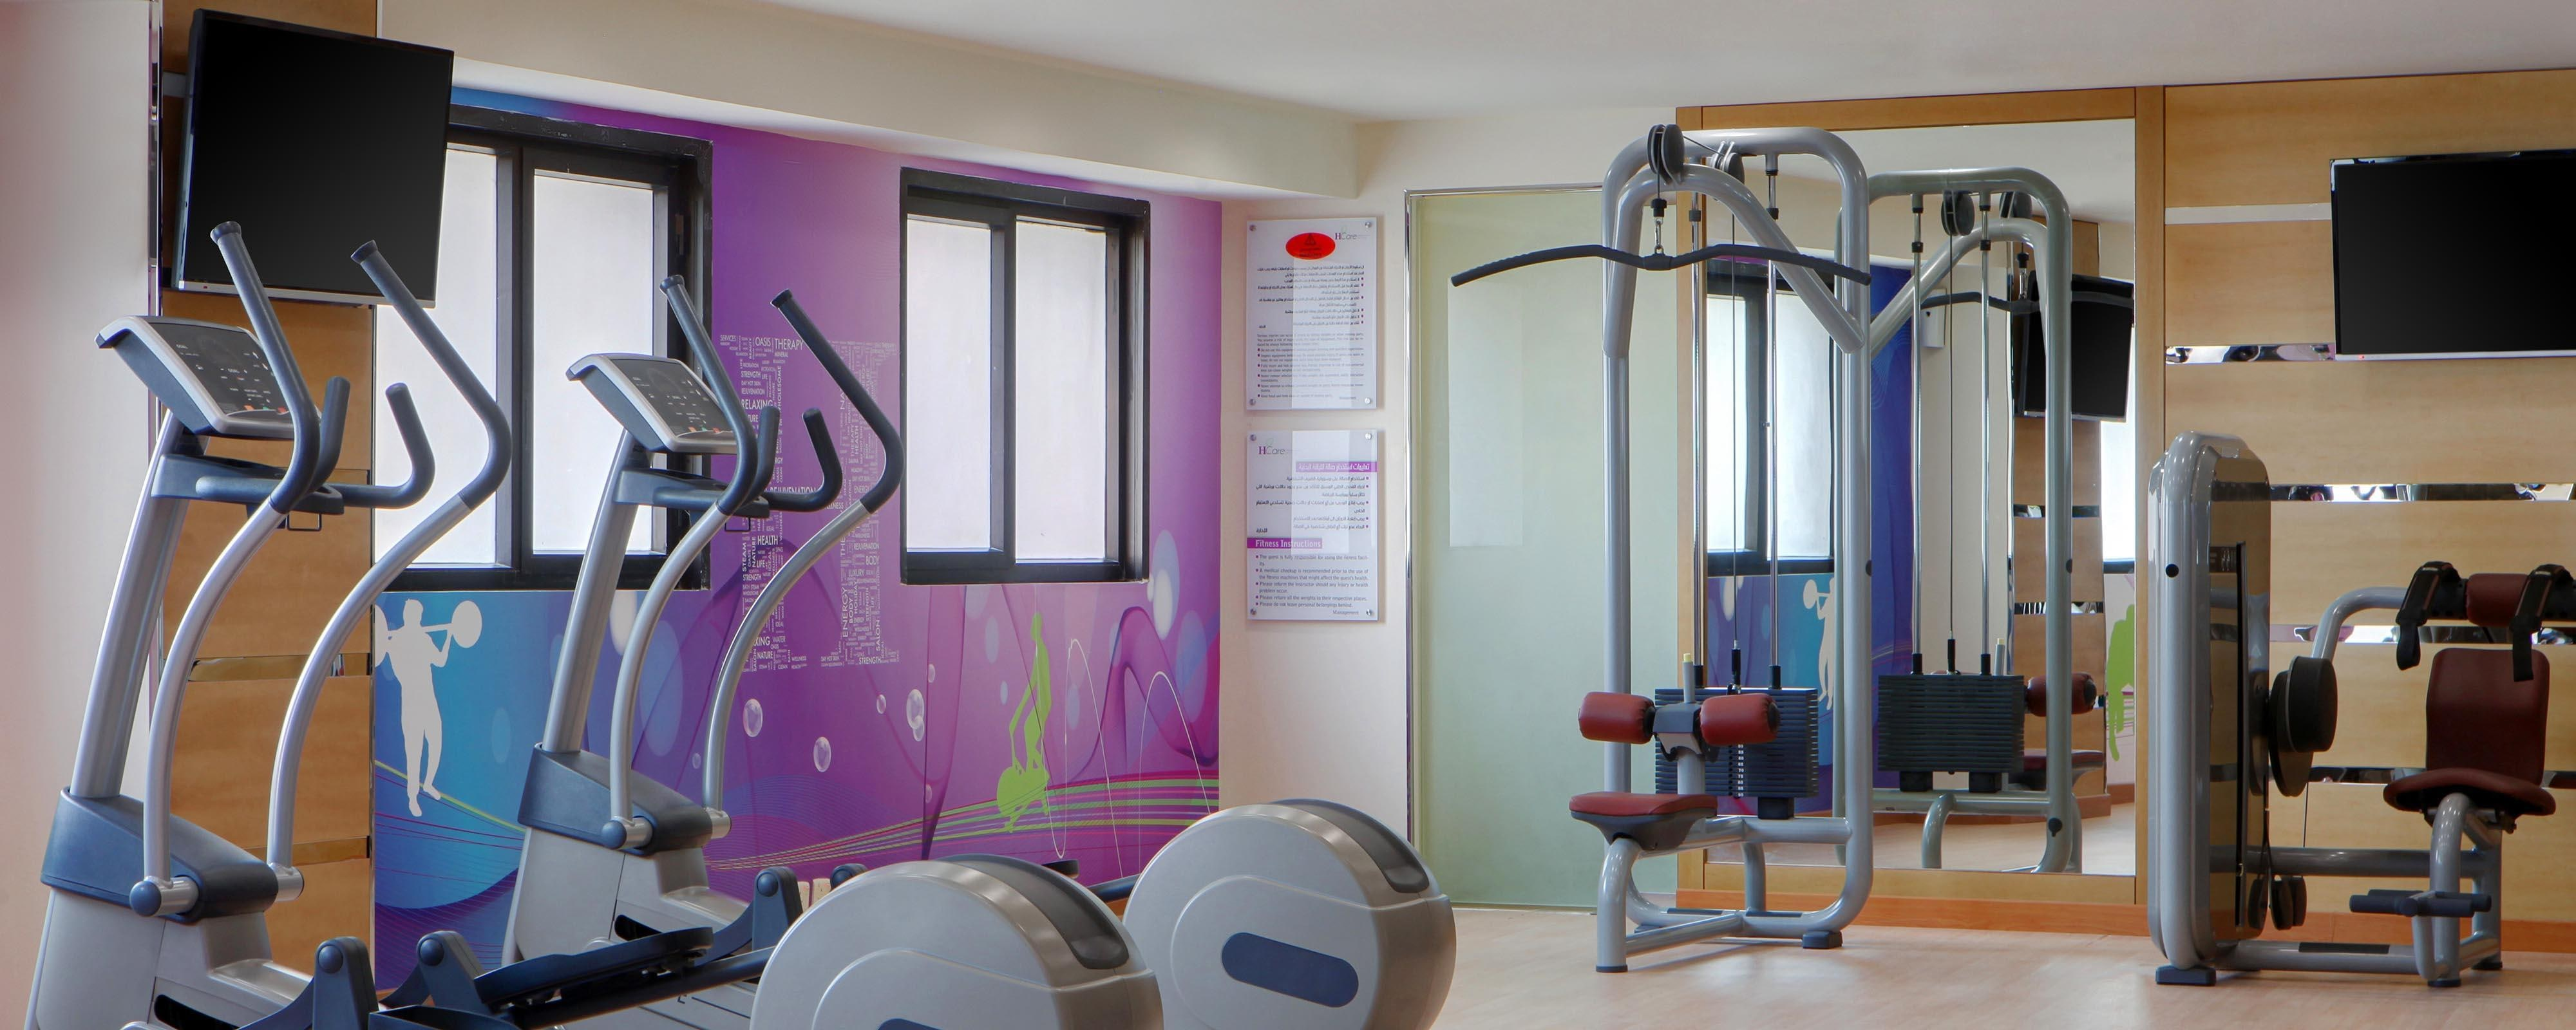 Hotel gym recreation four points by sheraton riyadh khaldia